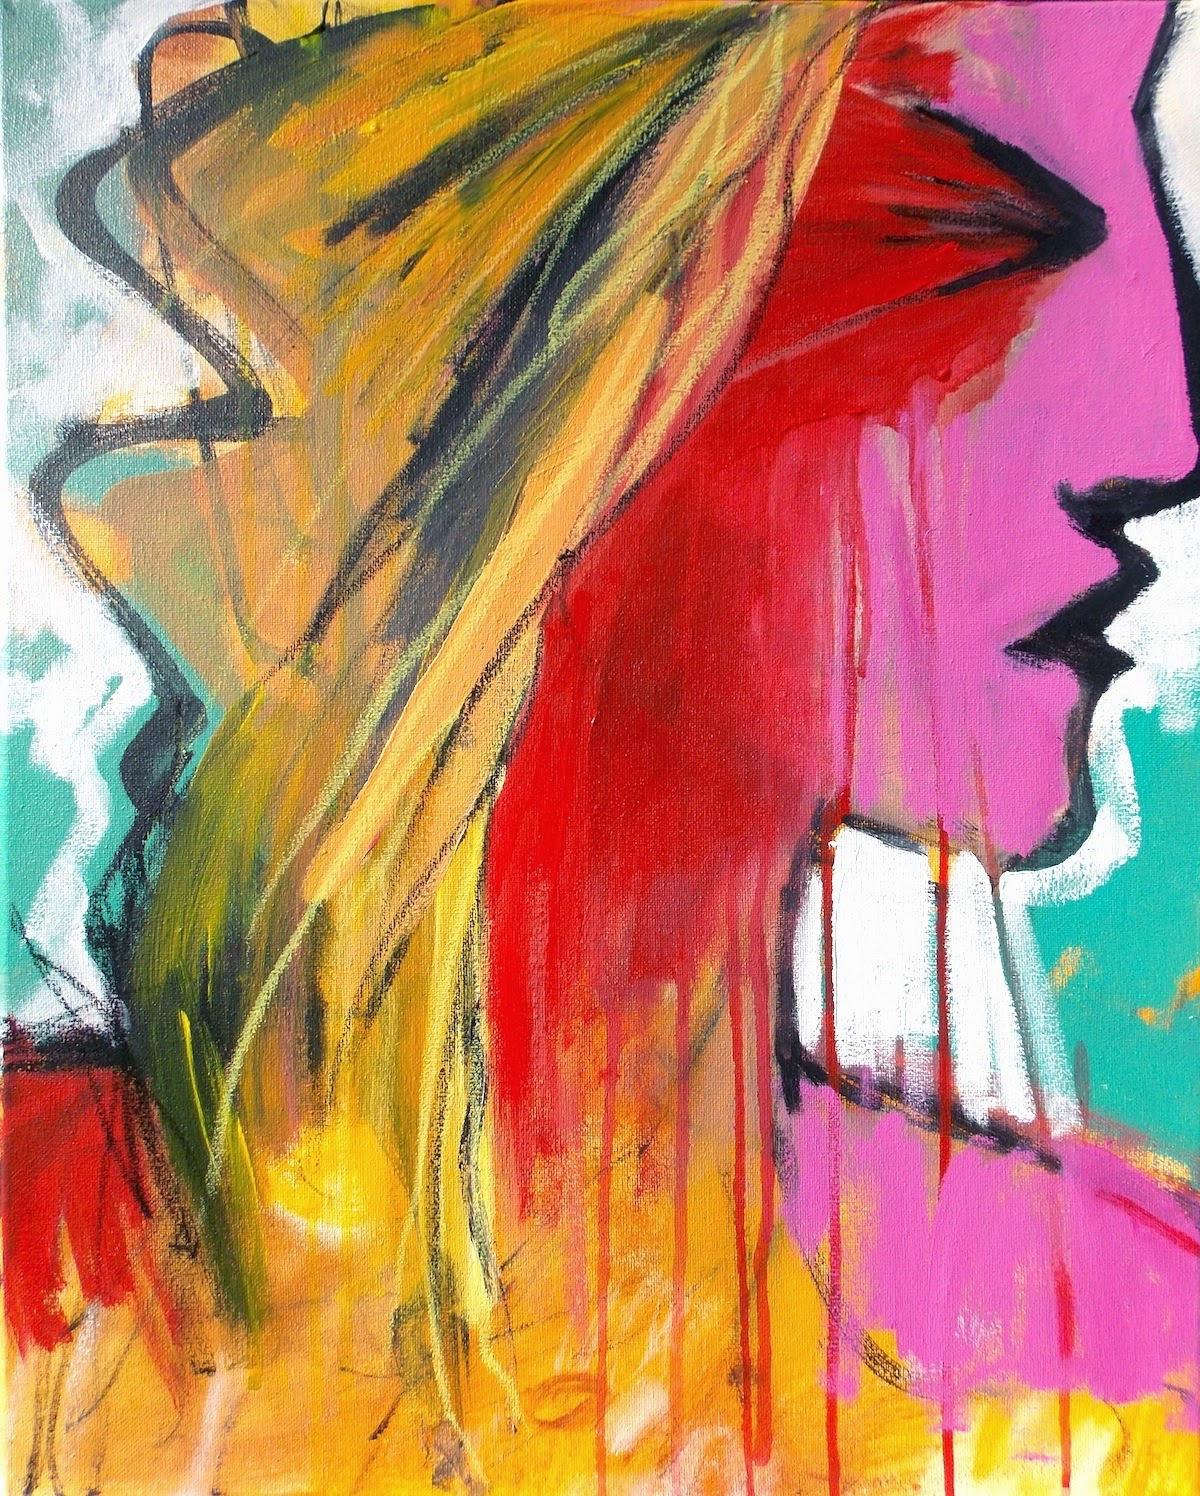 https://www.etsy.com/listing/187011814/original-painting-abstract-portrait